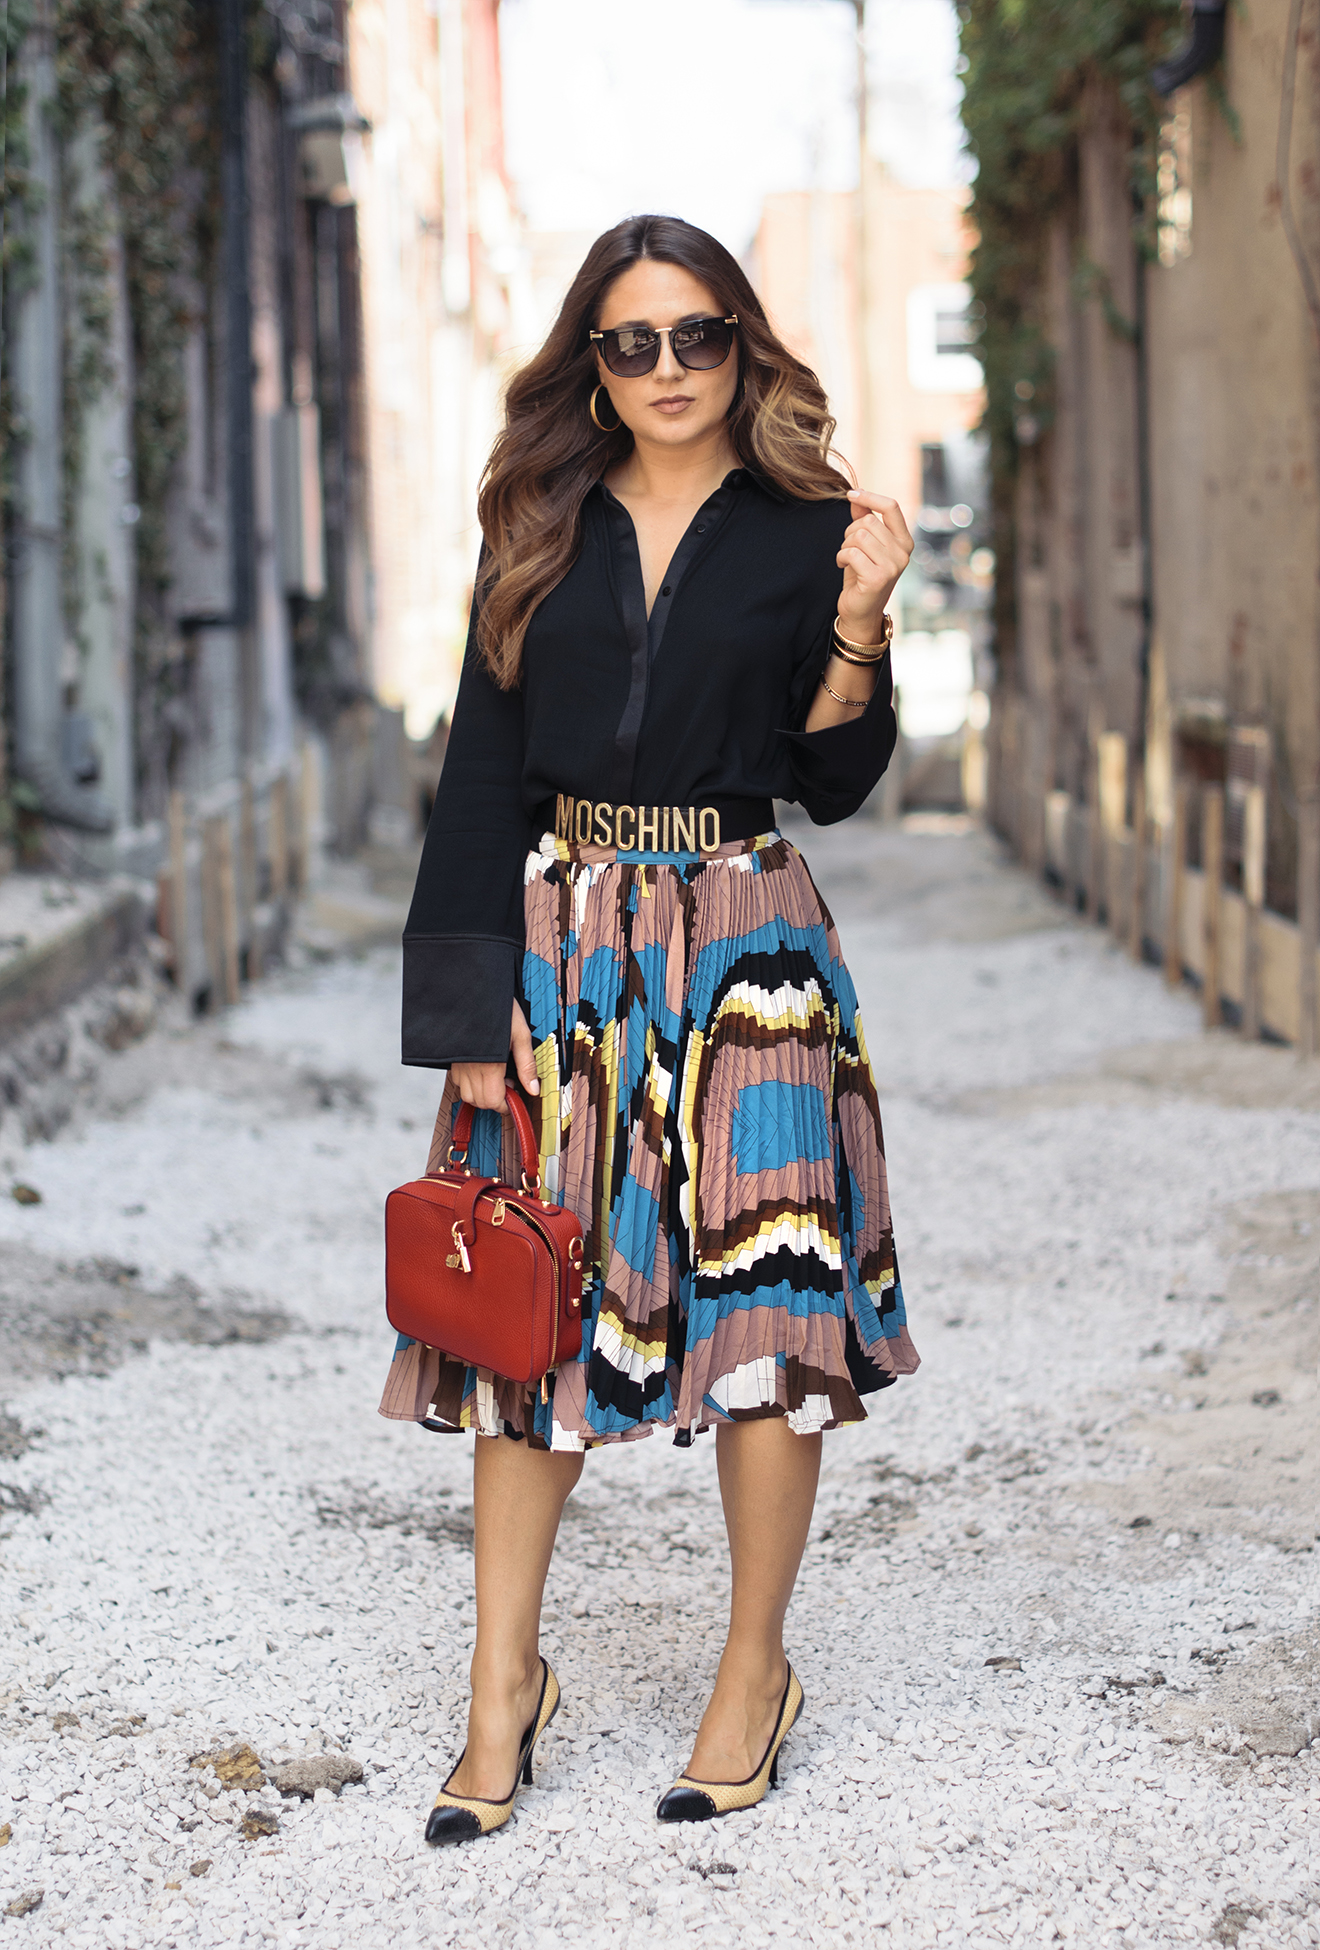 outfit-of-the-day-fashion-week-street-style